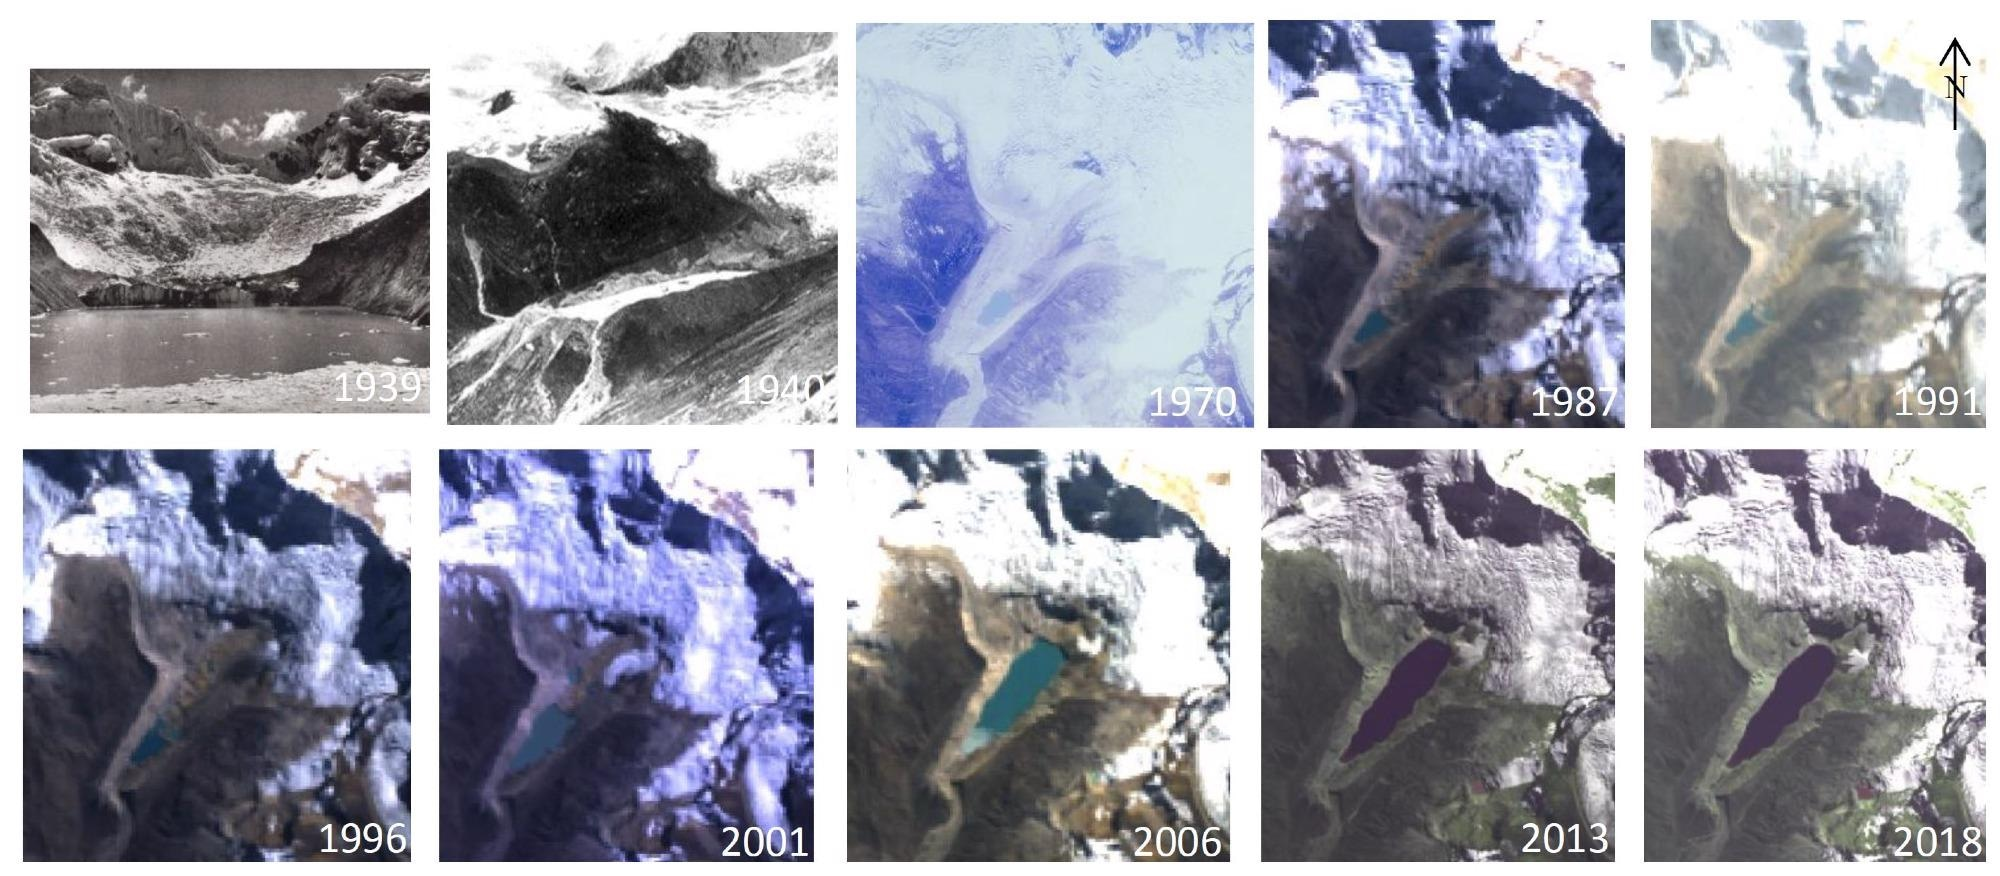 Historical photographs (first three panels) and satellite images show how Lake Palcacocha has grown as the glacier has receded.